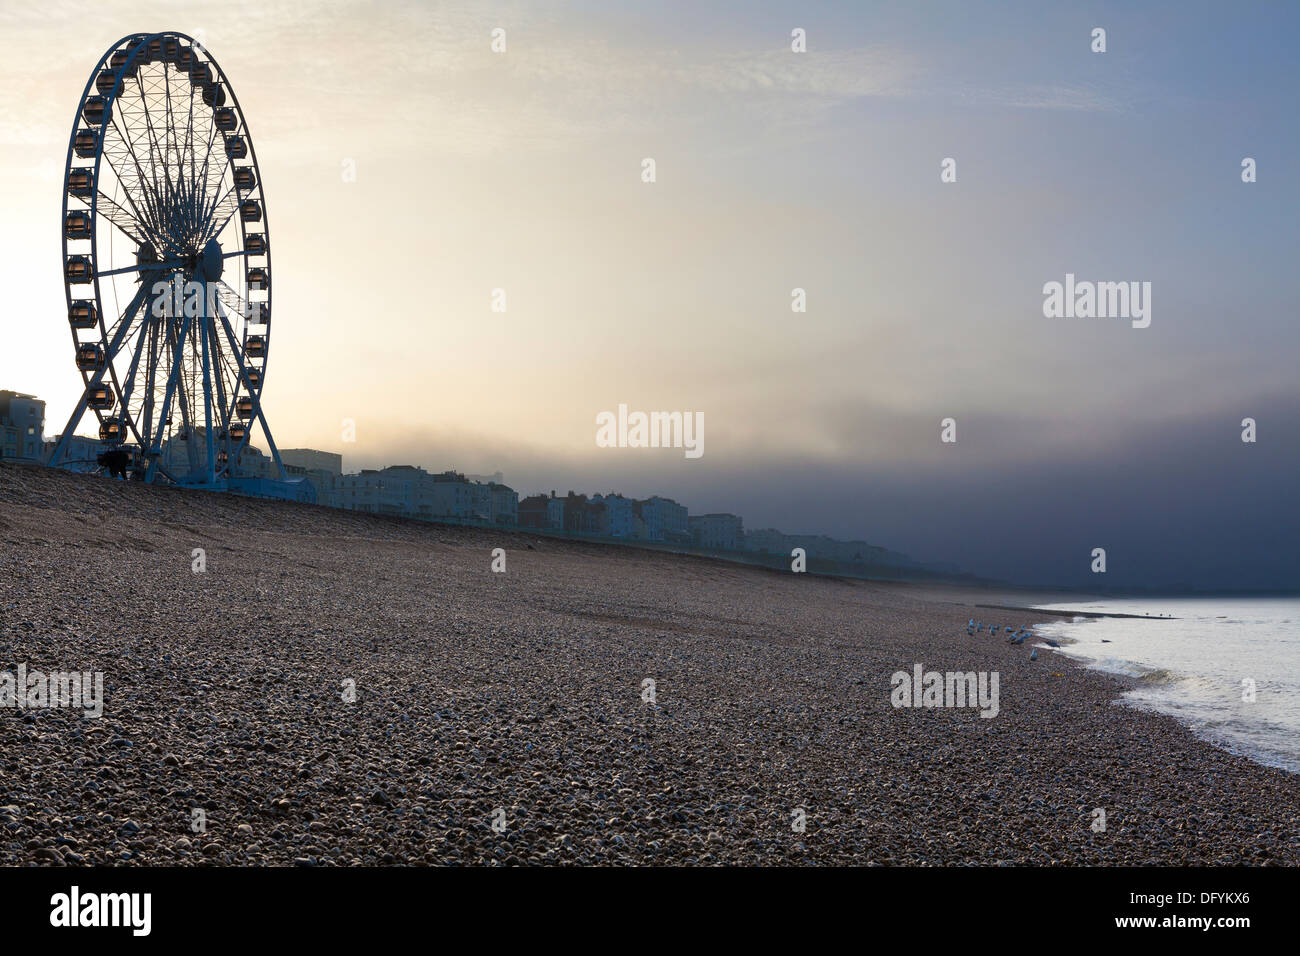 Ferris wheel at the beach front, Brighton, Sussex, United Kingdom, - Stock Image